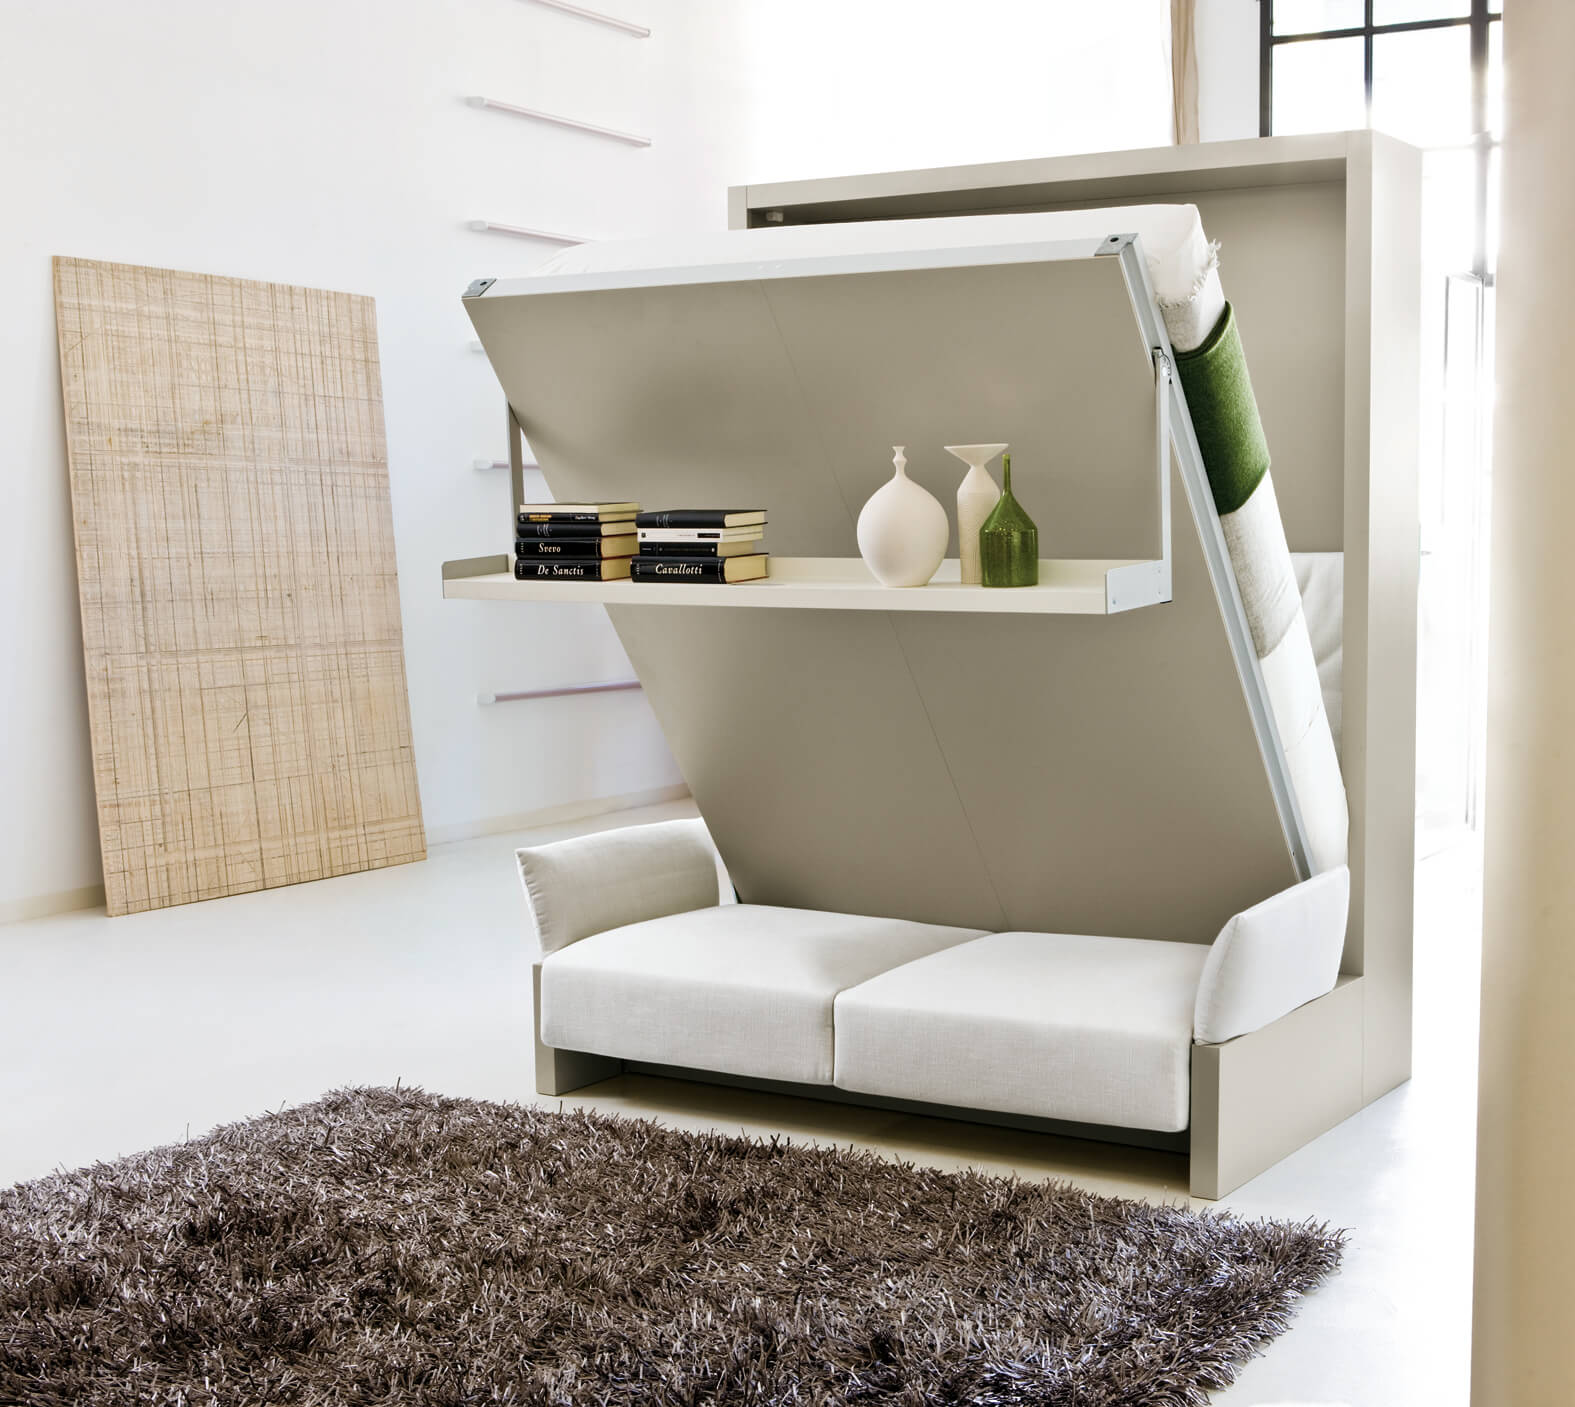 Wall beds for tiny home living interior design design news and wall beds for tiny home living amipublicfo Gallery